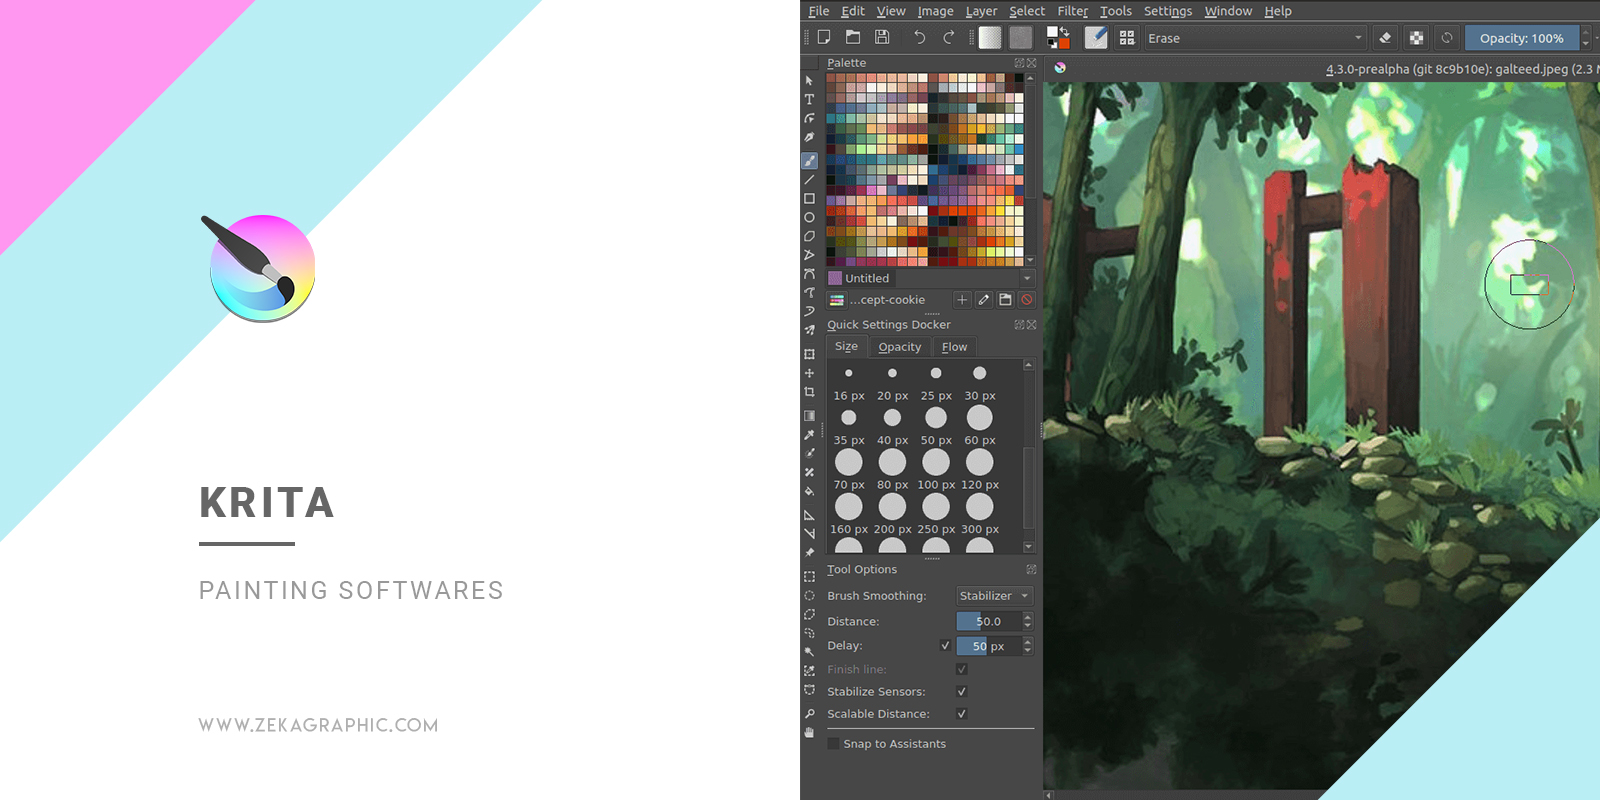 Krita Best Painting Softwares for Illustrators and Graphic Design